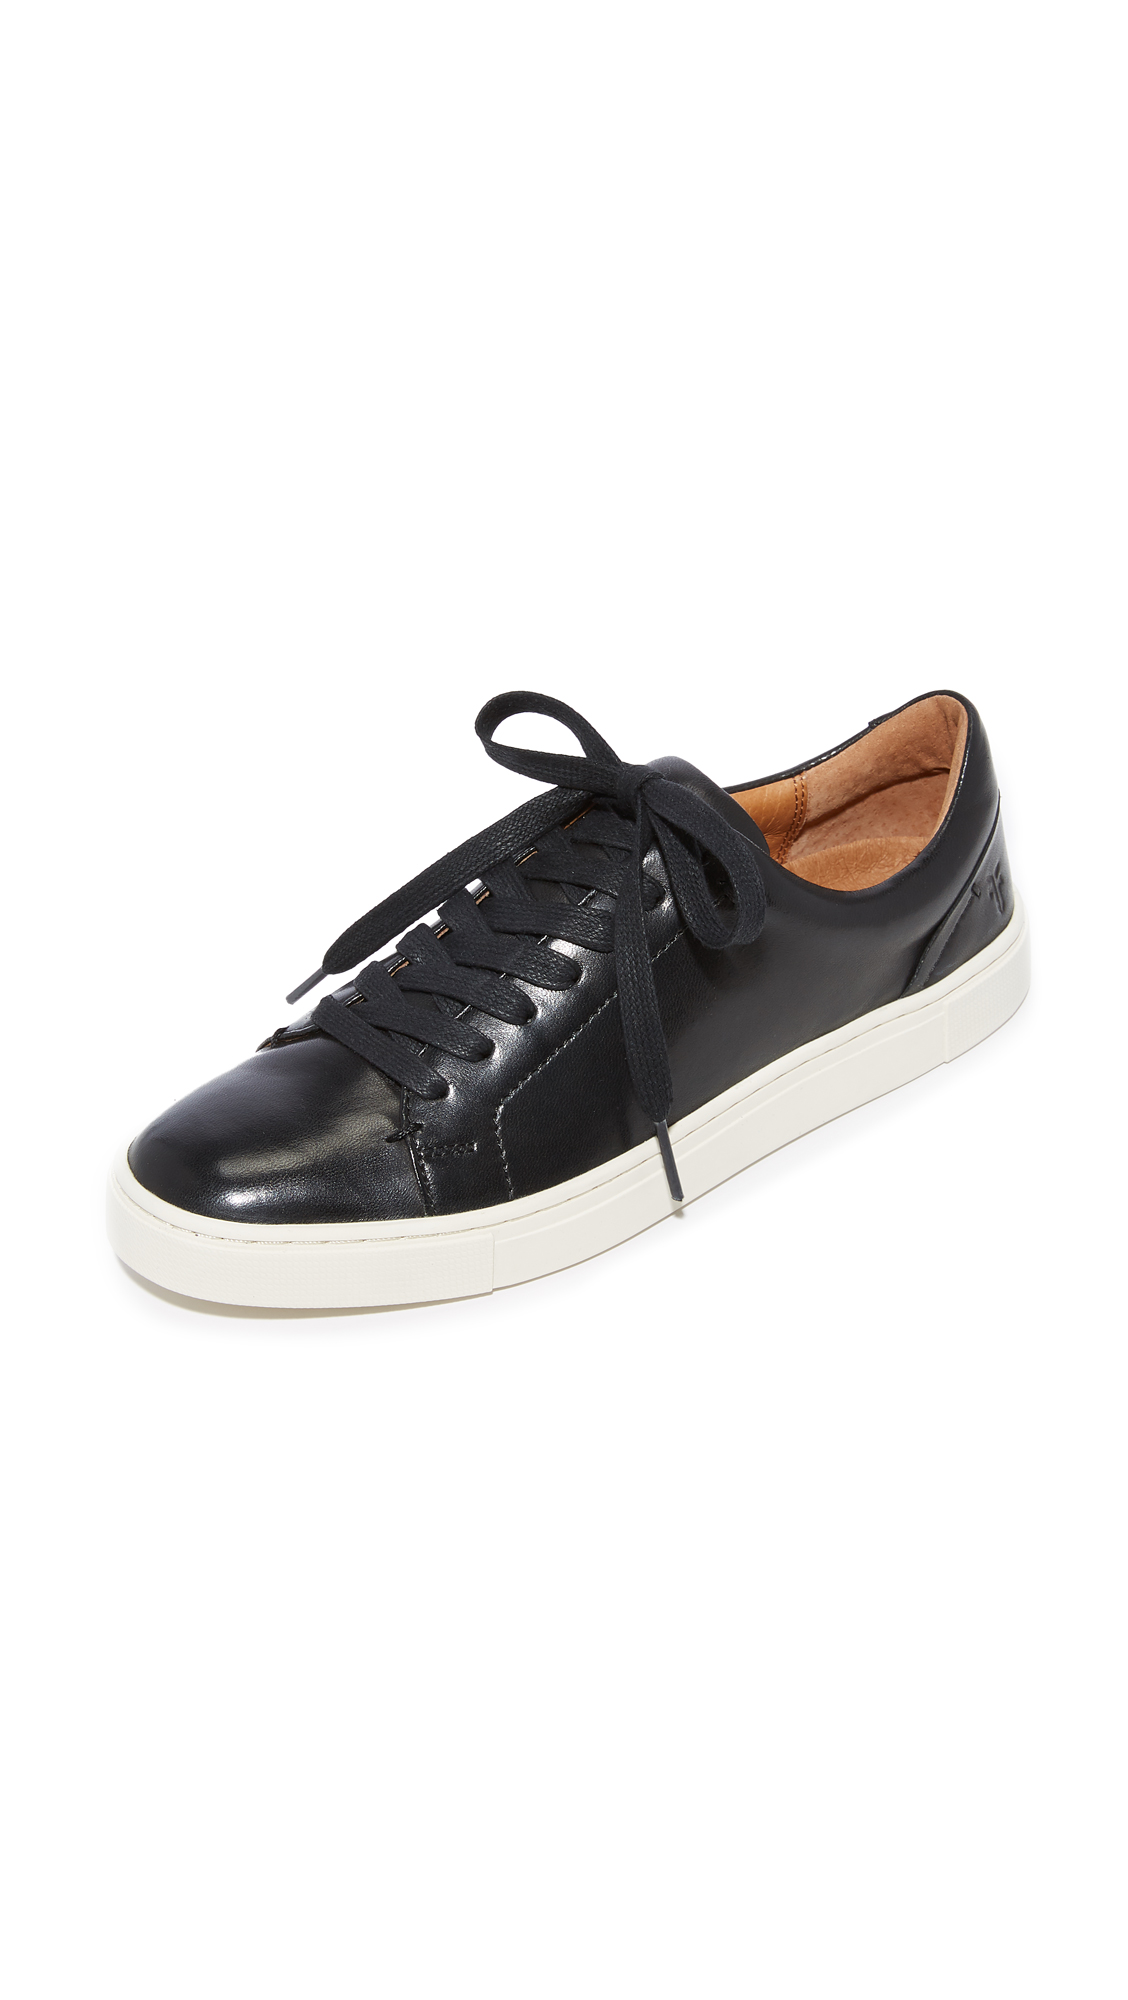 Frye Ivy Low Lace Sneakers - Black